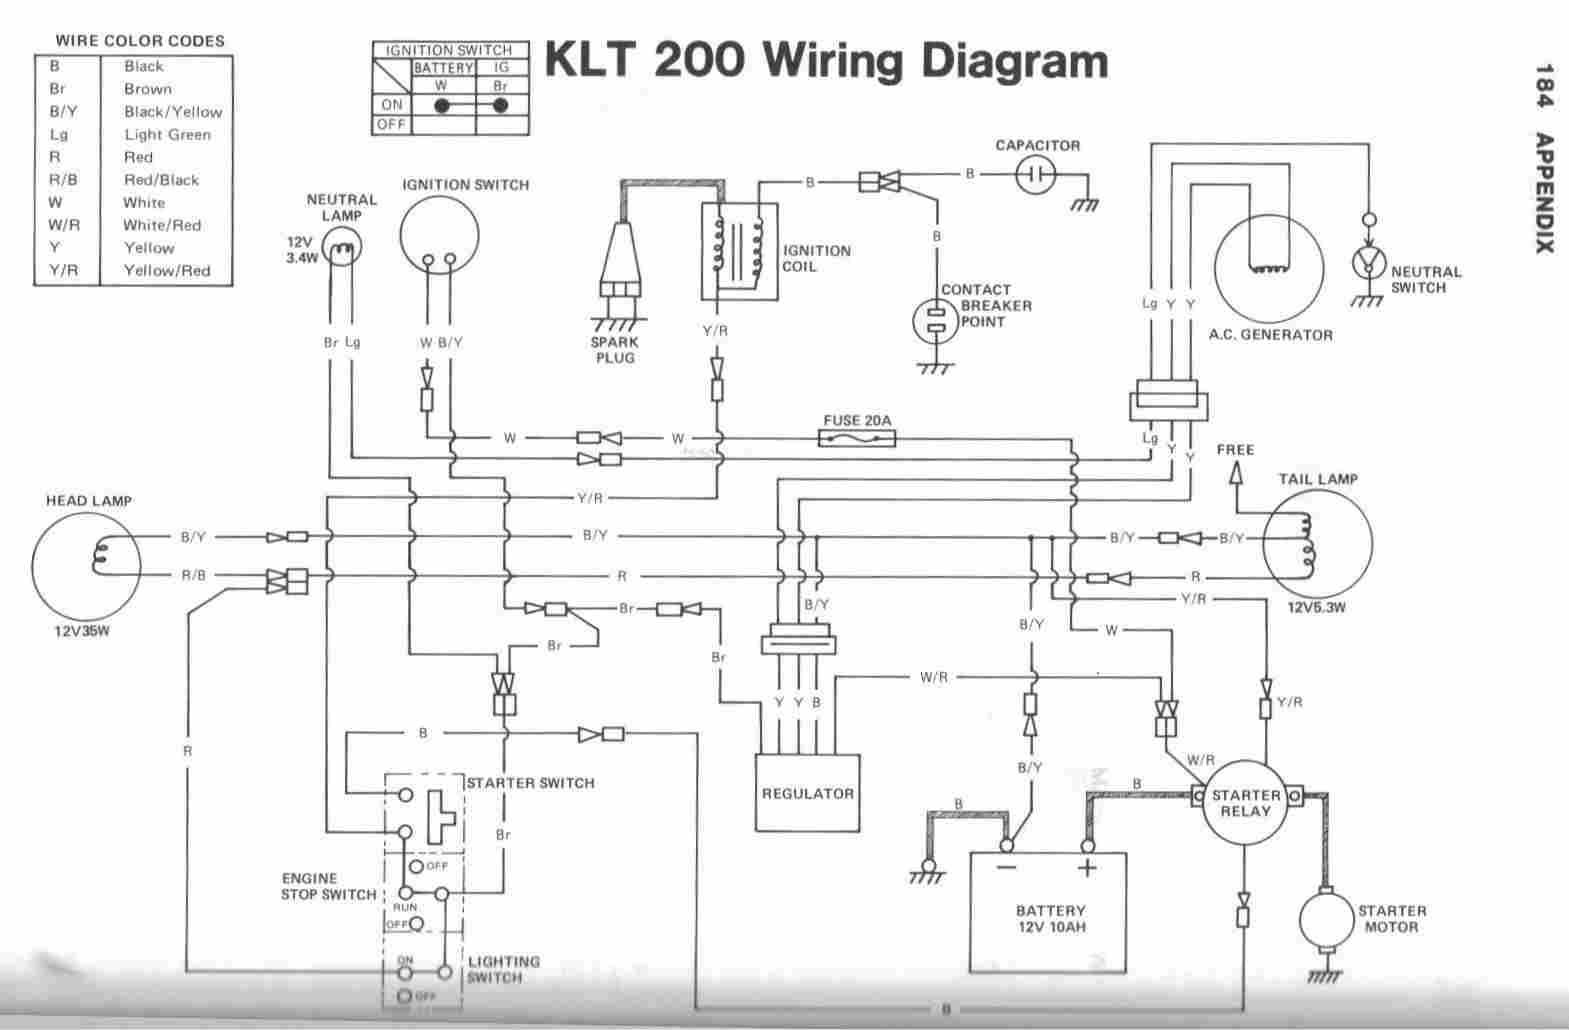 2869034594ce054a636782e5c44b61b4 circuit and wiring diagrams circuit wiring diagrams \u2022 wiring residential wiring diagrams and schematics at mifinder.co